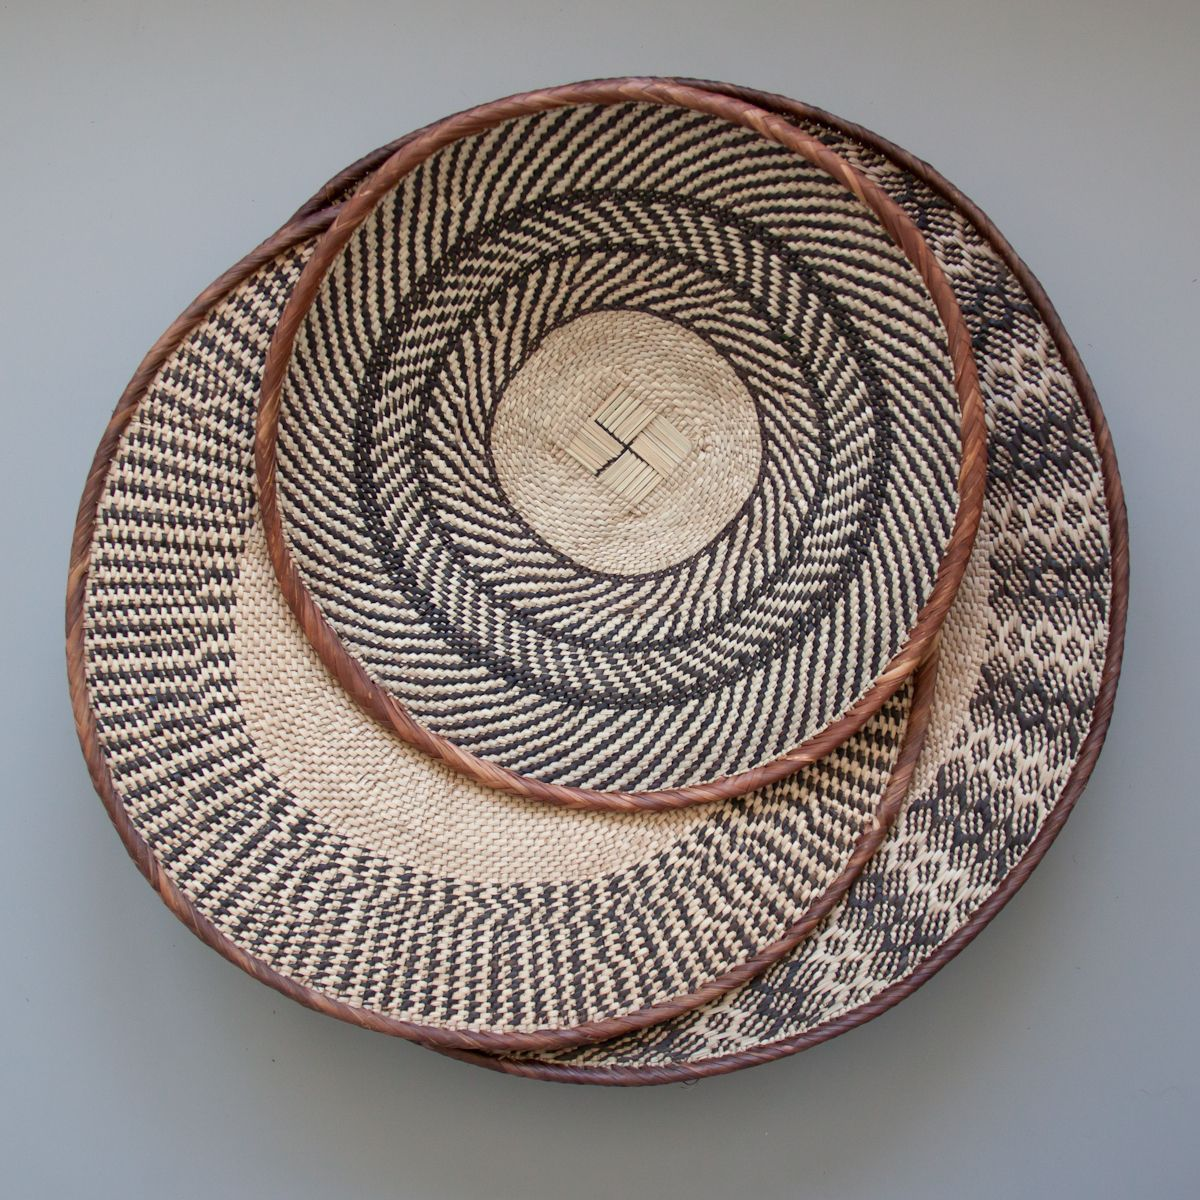 Tonga Baskets Great Hung As A Wall Decoration Or A Center